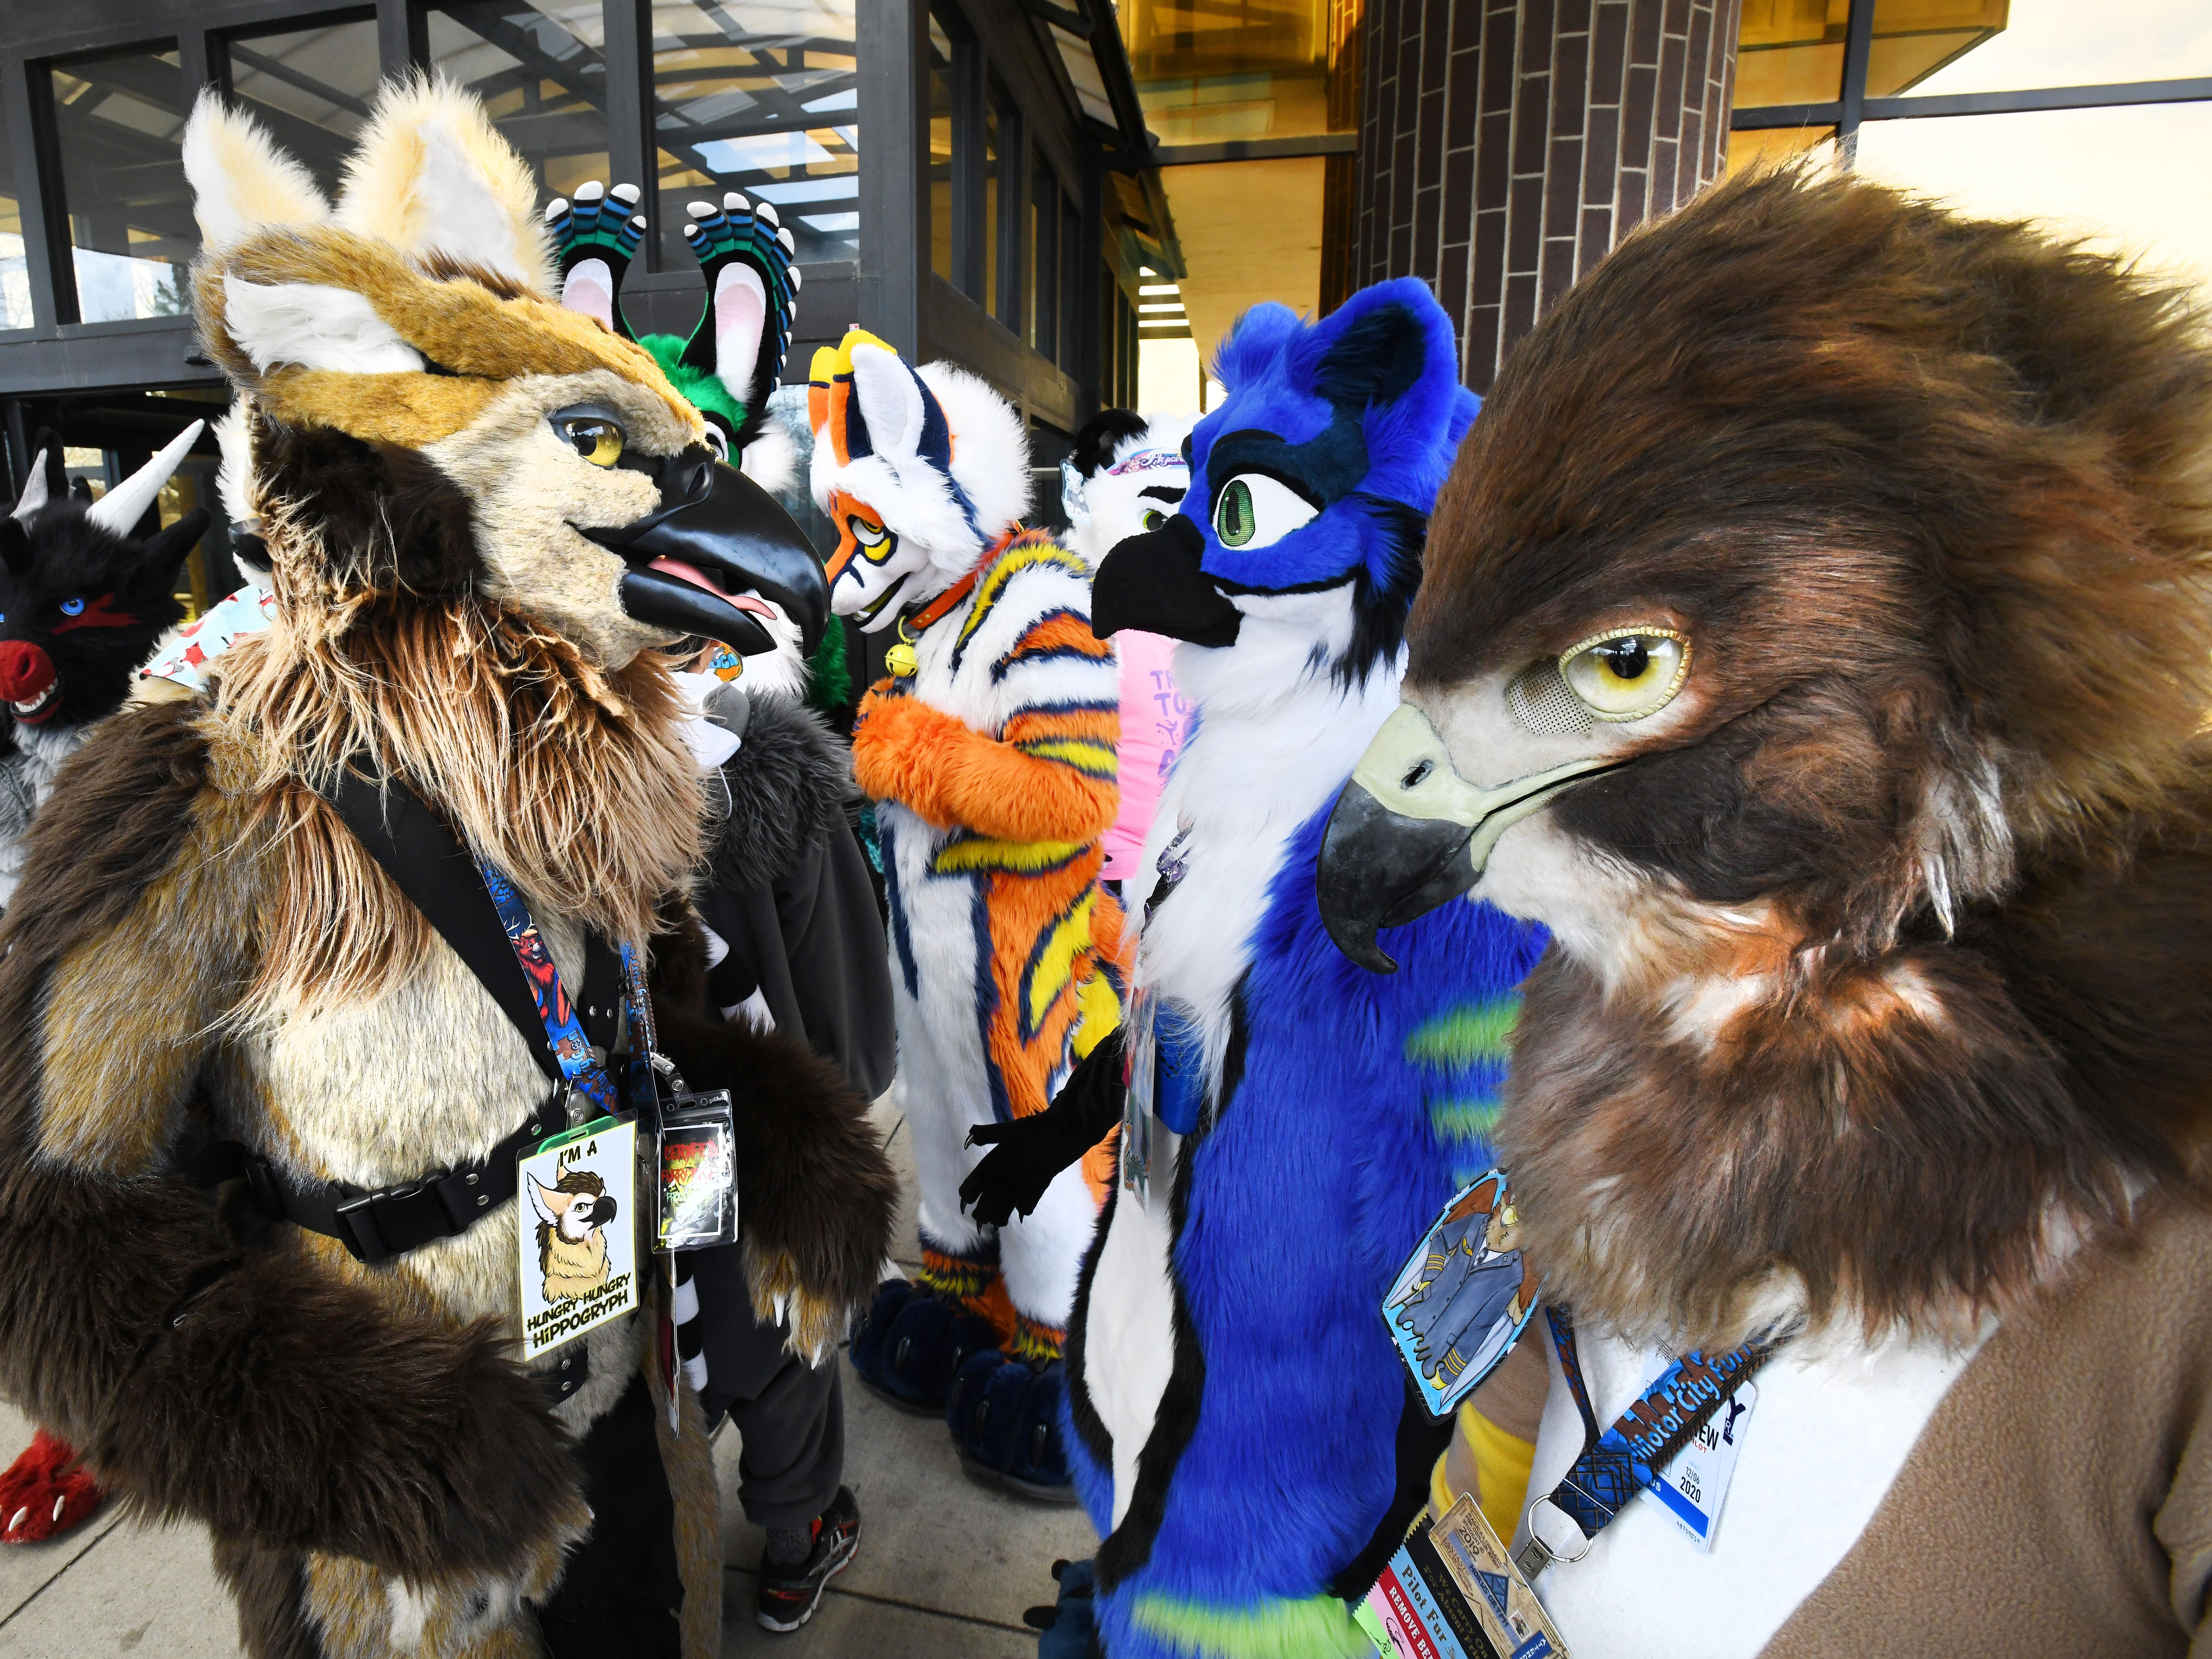 Birds of a feather do flock together outside the Westin Detroit-Southfield hotel, Friday, April 12, 2019, for the 2019 Motor City Furry Convention that runs through the weekend. The convention is Michigan's 18+ anthropomorphic appreciation convention for furries and furry fans alike.  More info at https:/motorcityfurrycon.org/